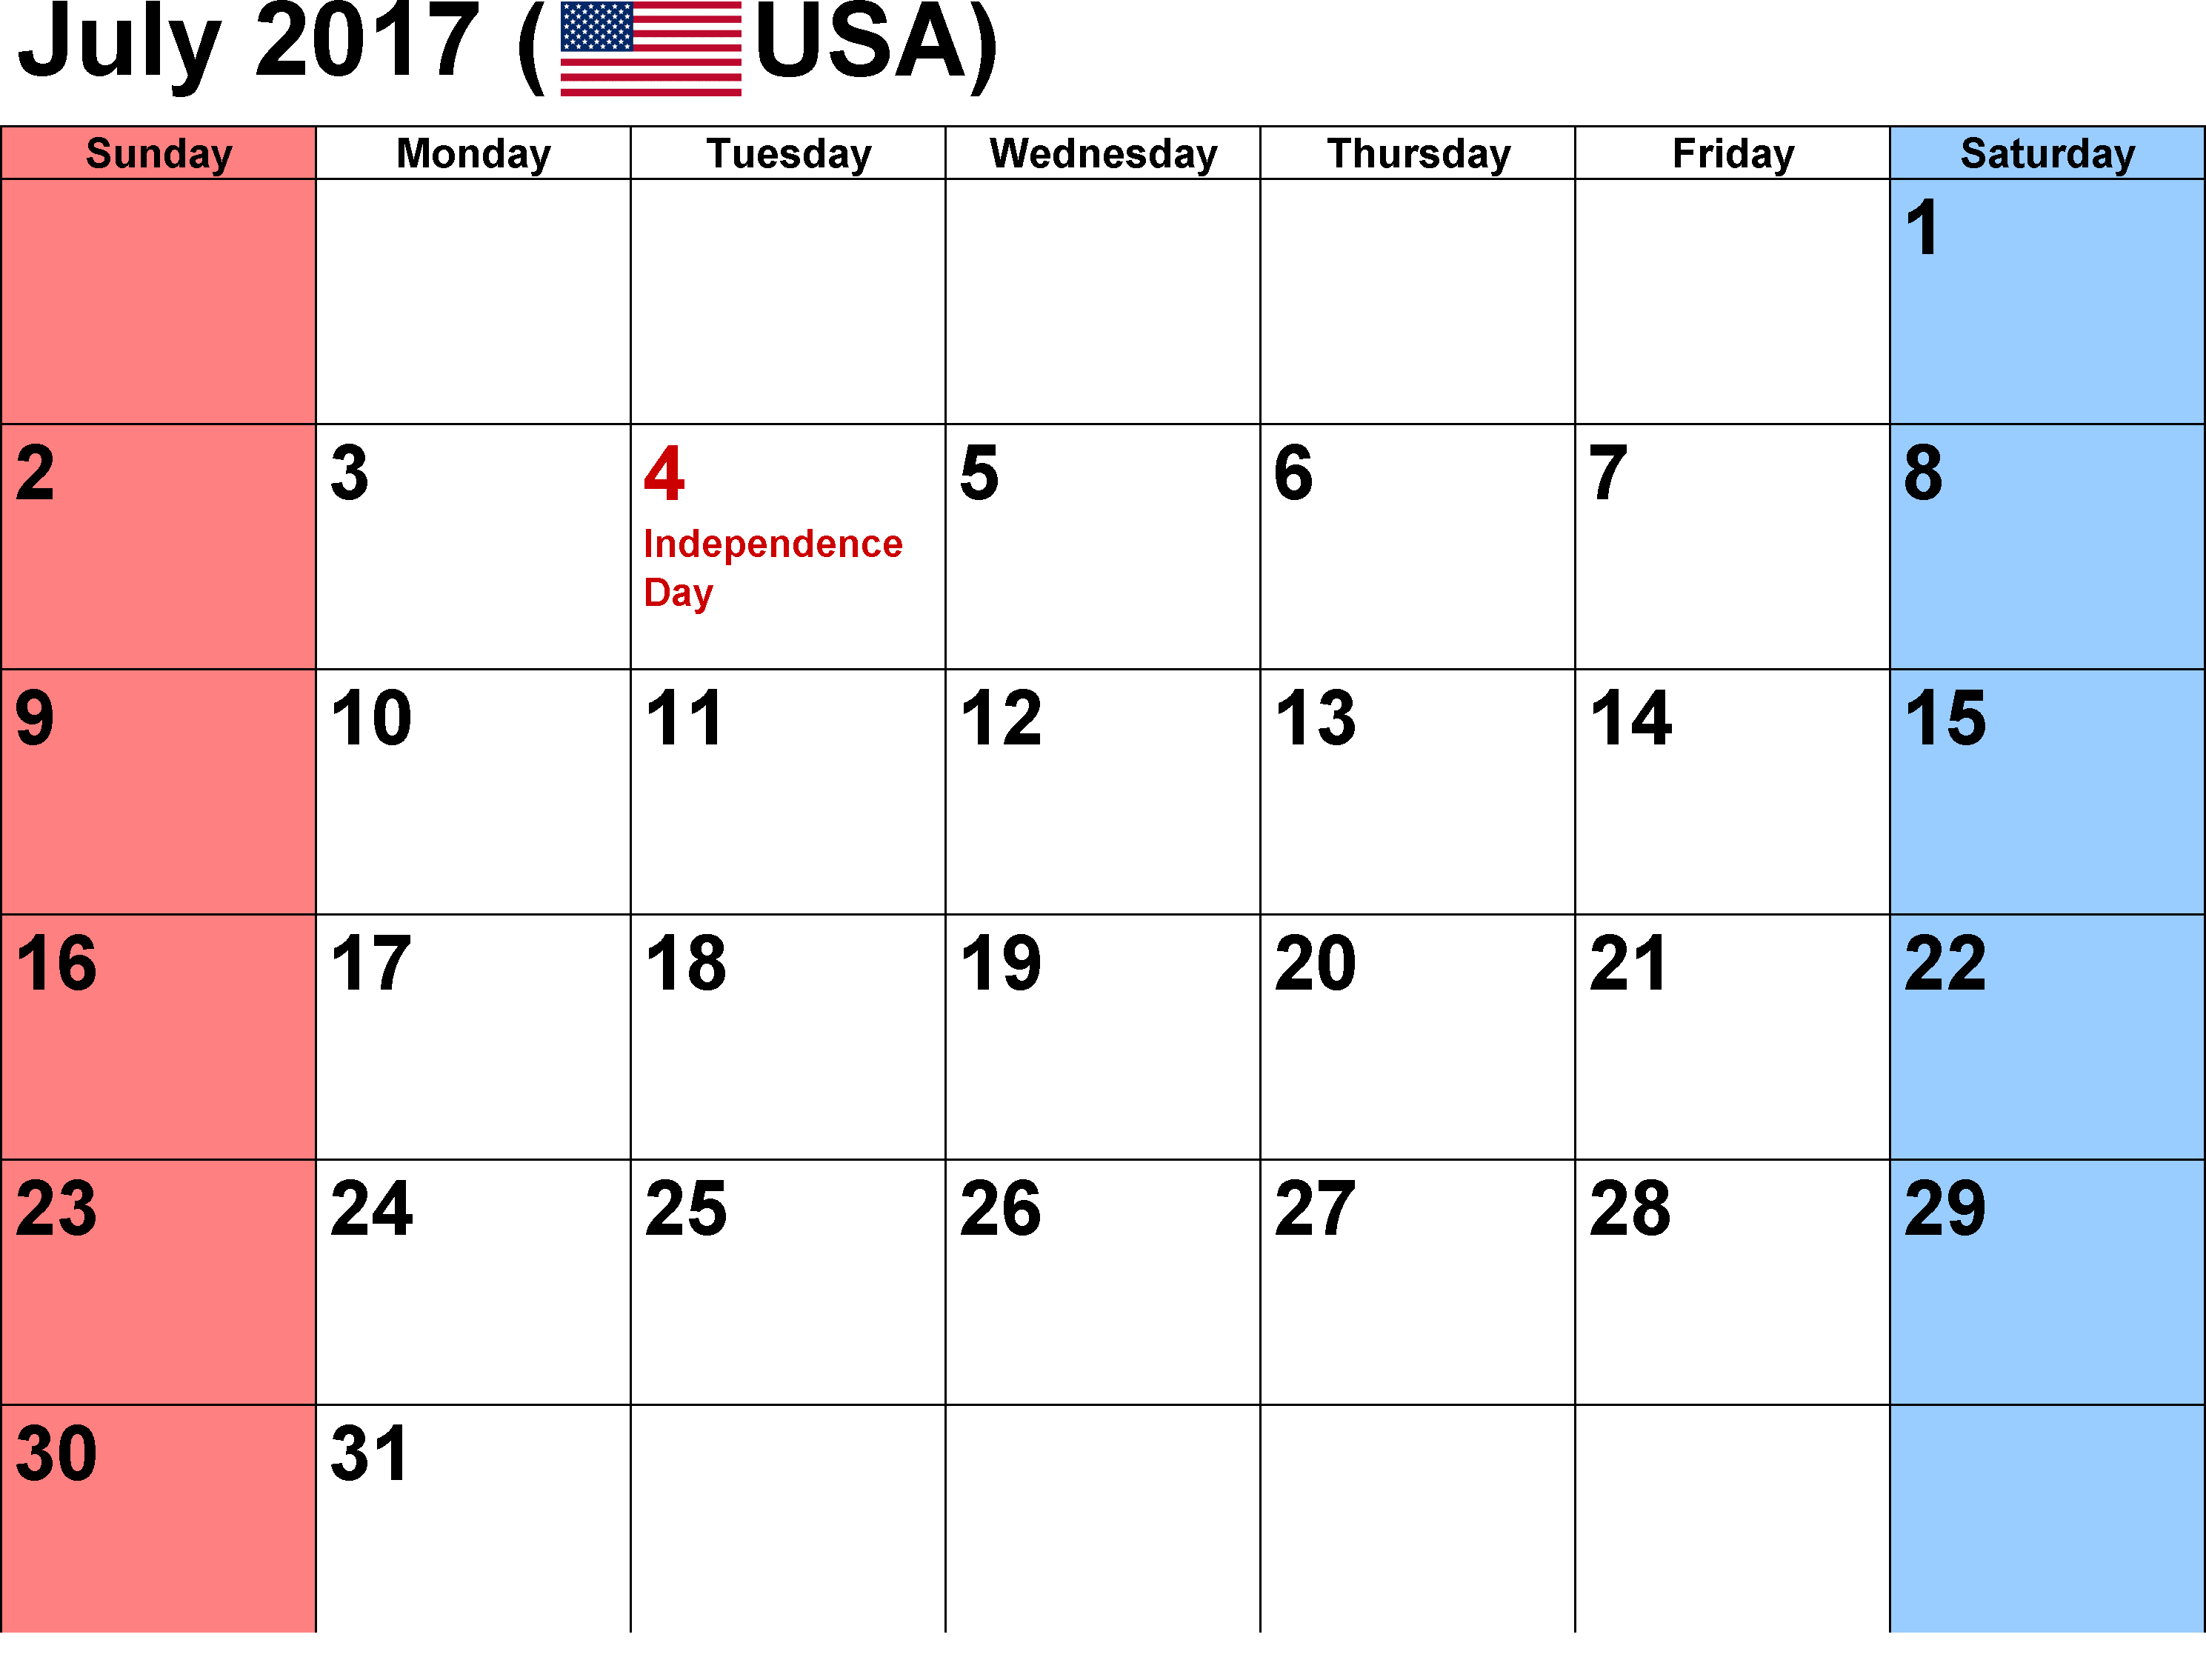 2017 July Calendar USA with holidays